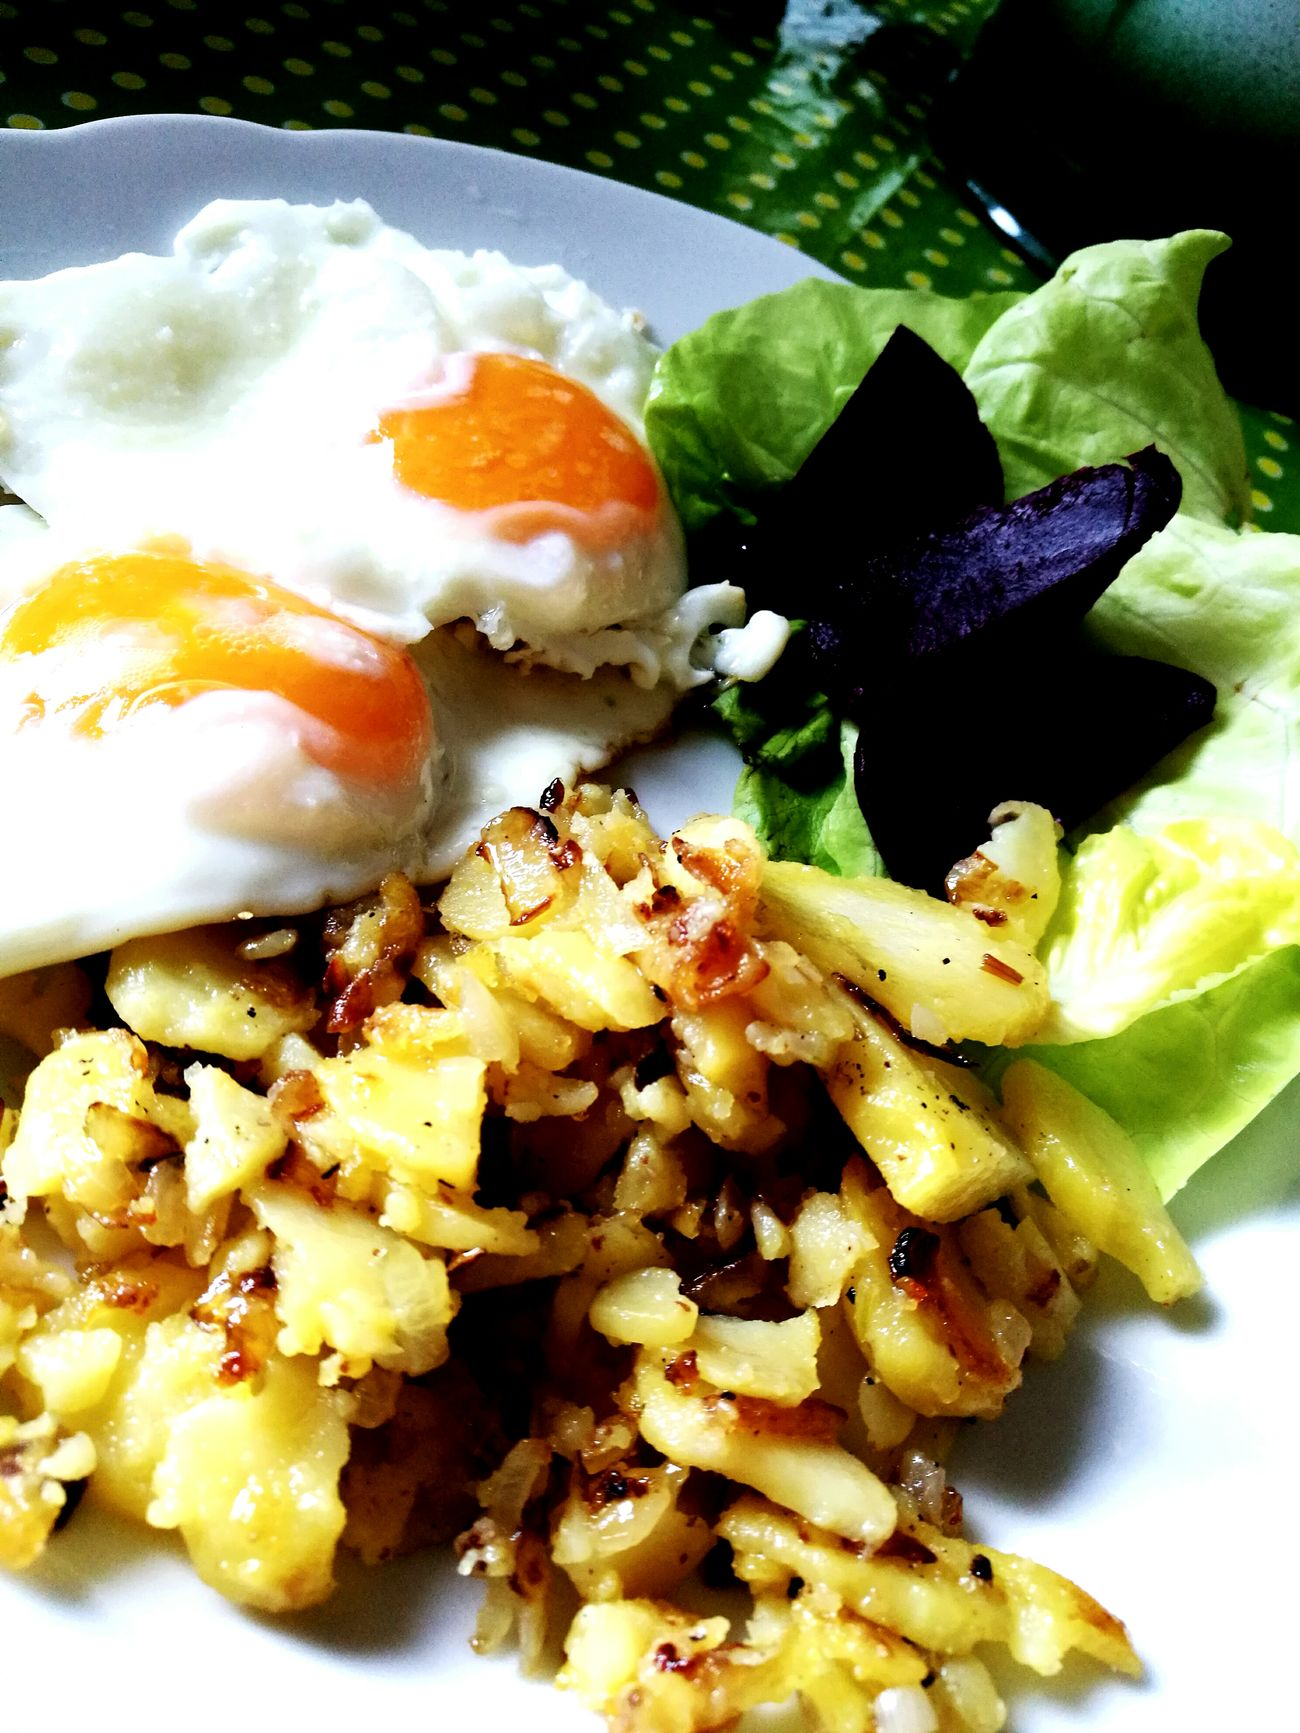 Tasty Food Healthy Eating Food And Drink Freshness Egg Yolk Ready-to-eat Day Close-up Eating Egg Tasty Tasty😋 Tastyfood Taste Taste Good Tasty ! Food And Drink Home